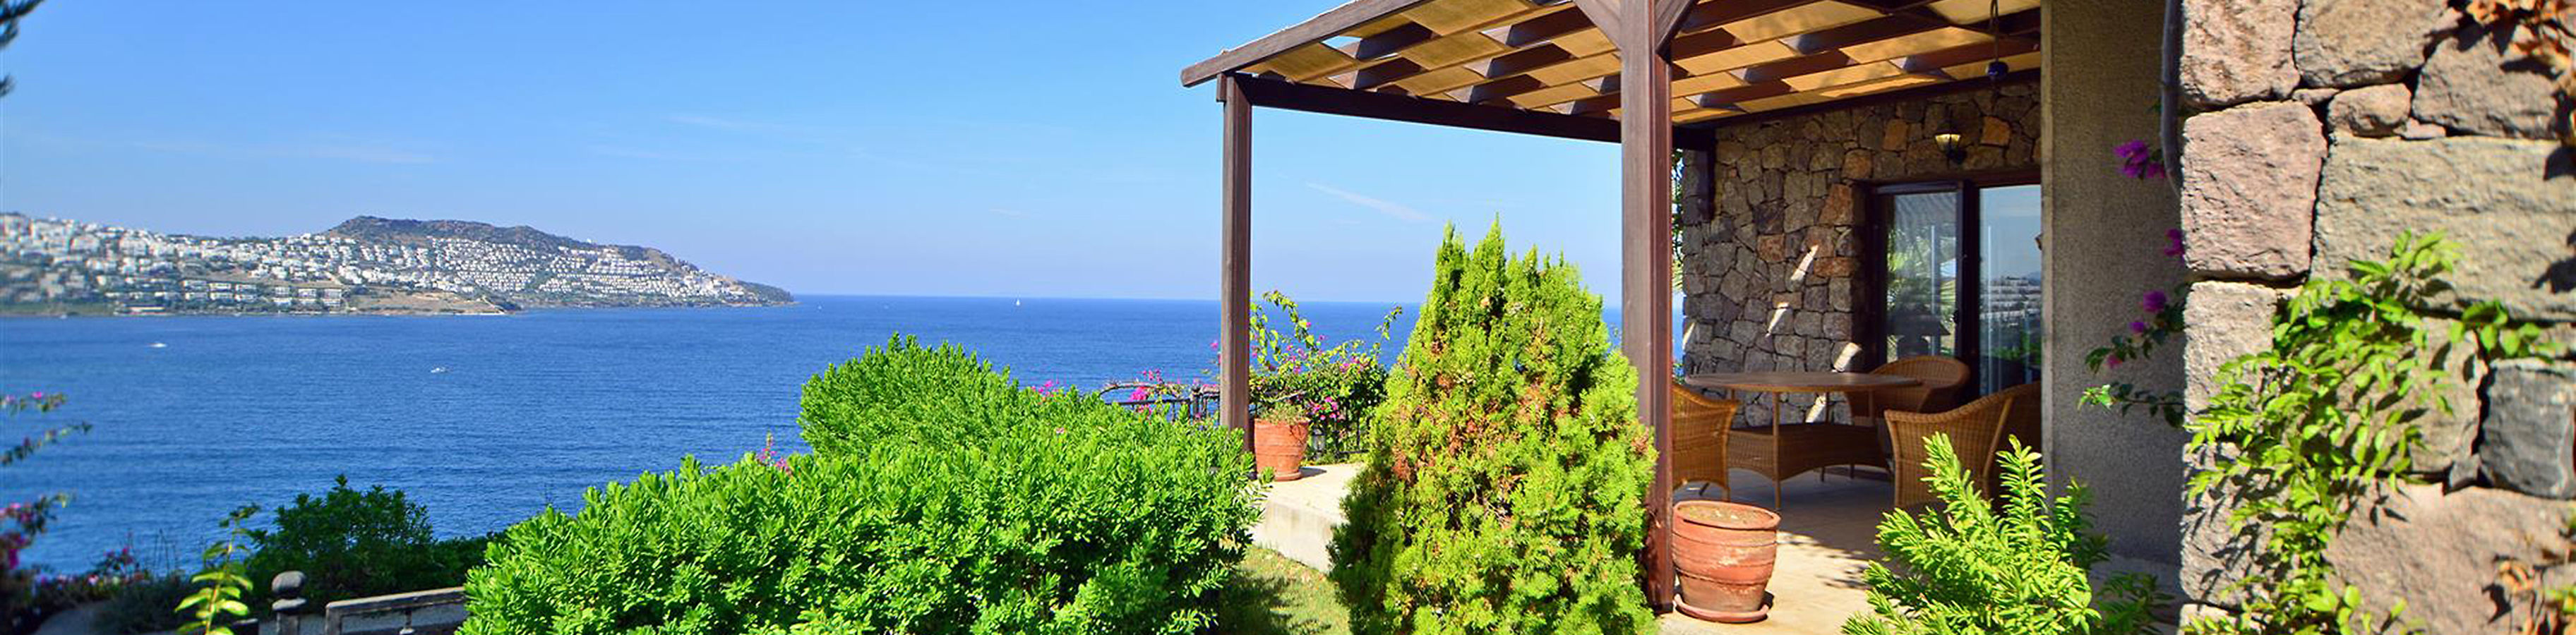 Exclusive Yalıkavak Villa private beach sea views